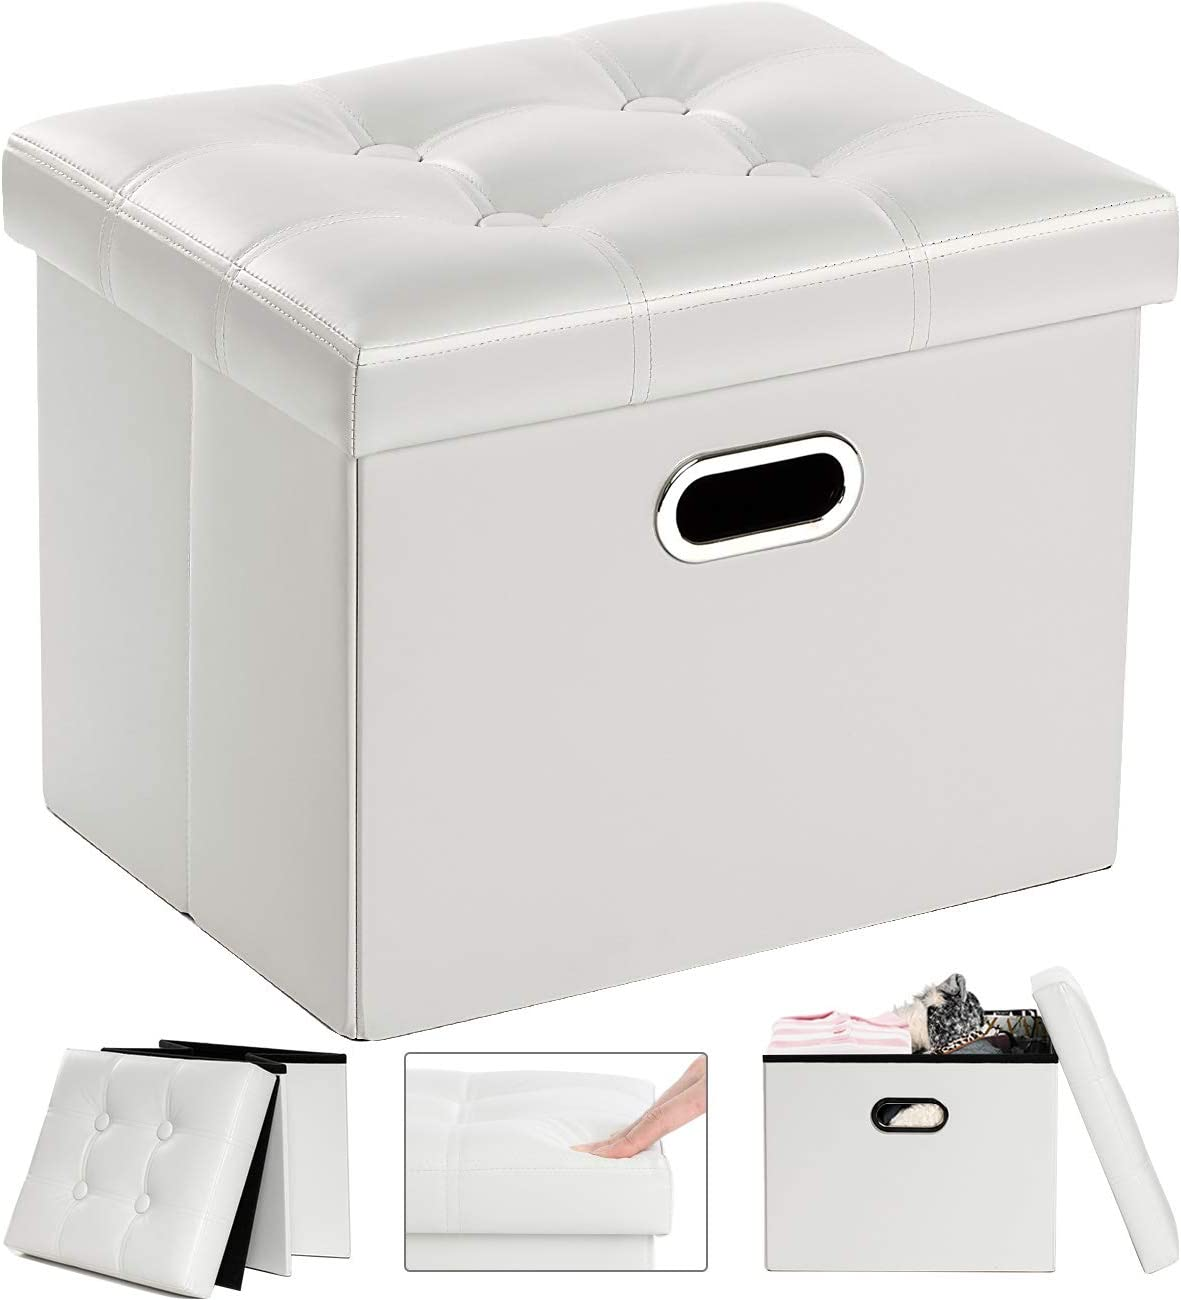 COSYLAND Storage Ottoman 17x13x13in Leather Ottoman Rectangle Foot Rest Foot Stool Folding Ottoman for Room Dorm Small Collapsible Bench Seat Organizer Entryway Furniture with Handles Lid White